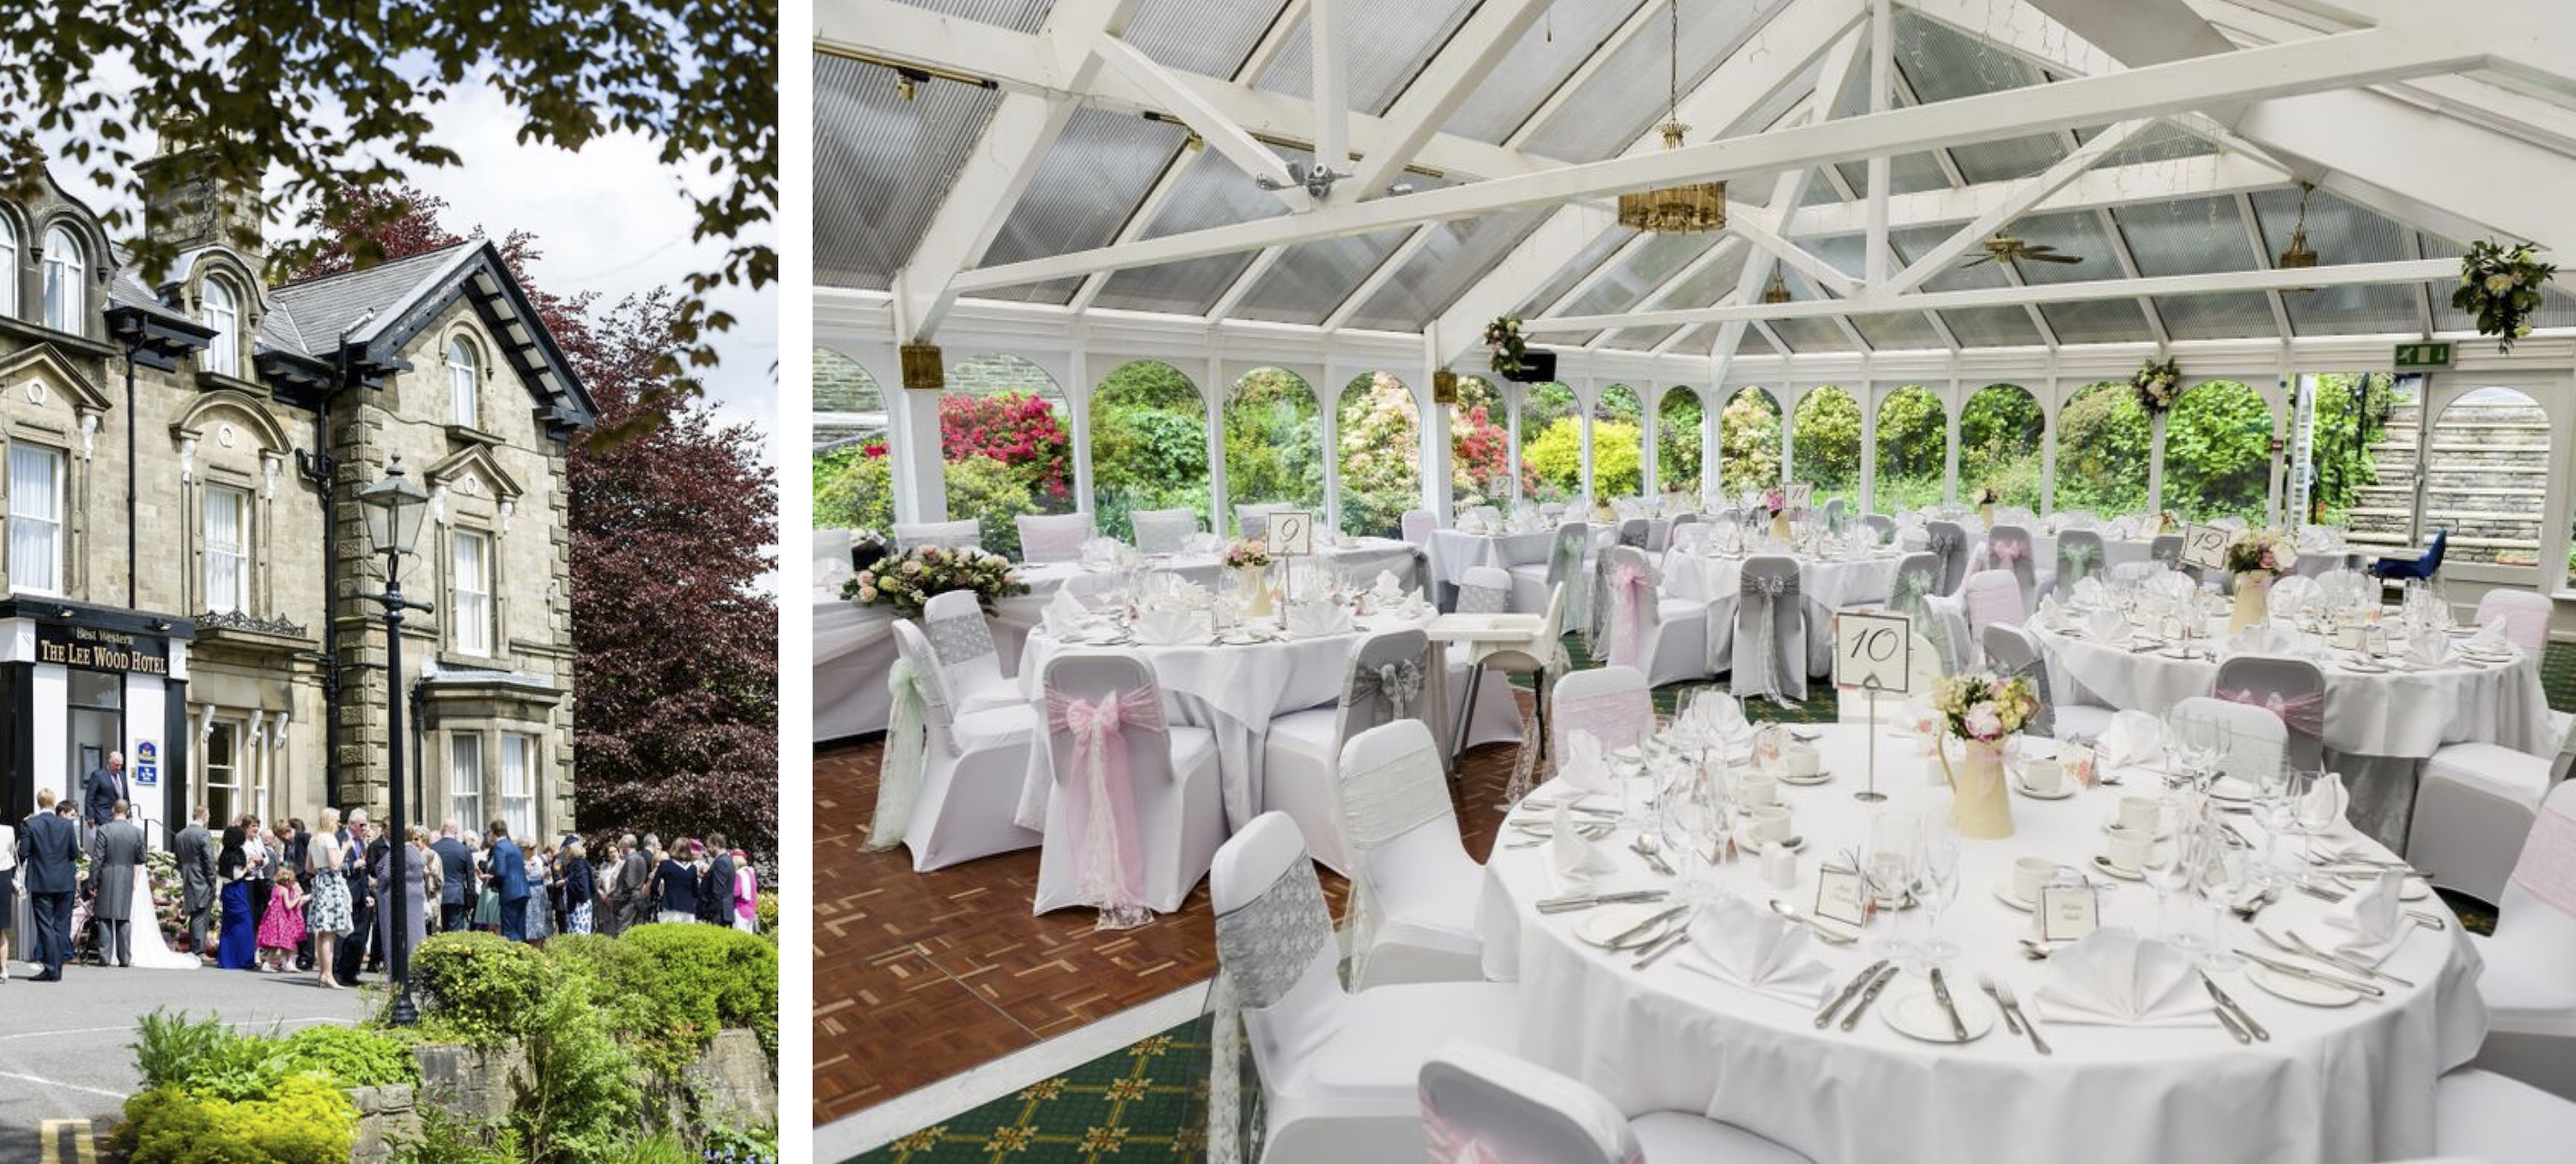 The Lee Wood Hotel Wedding Showcase